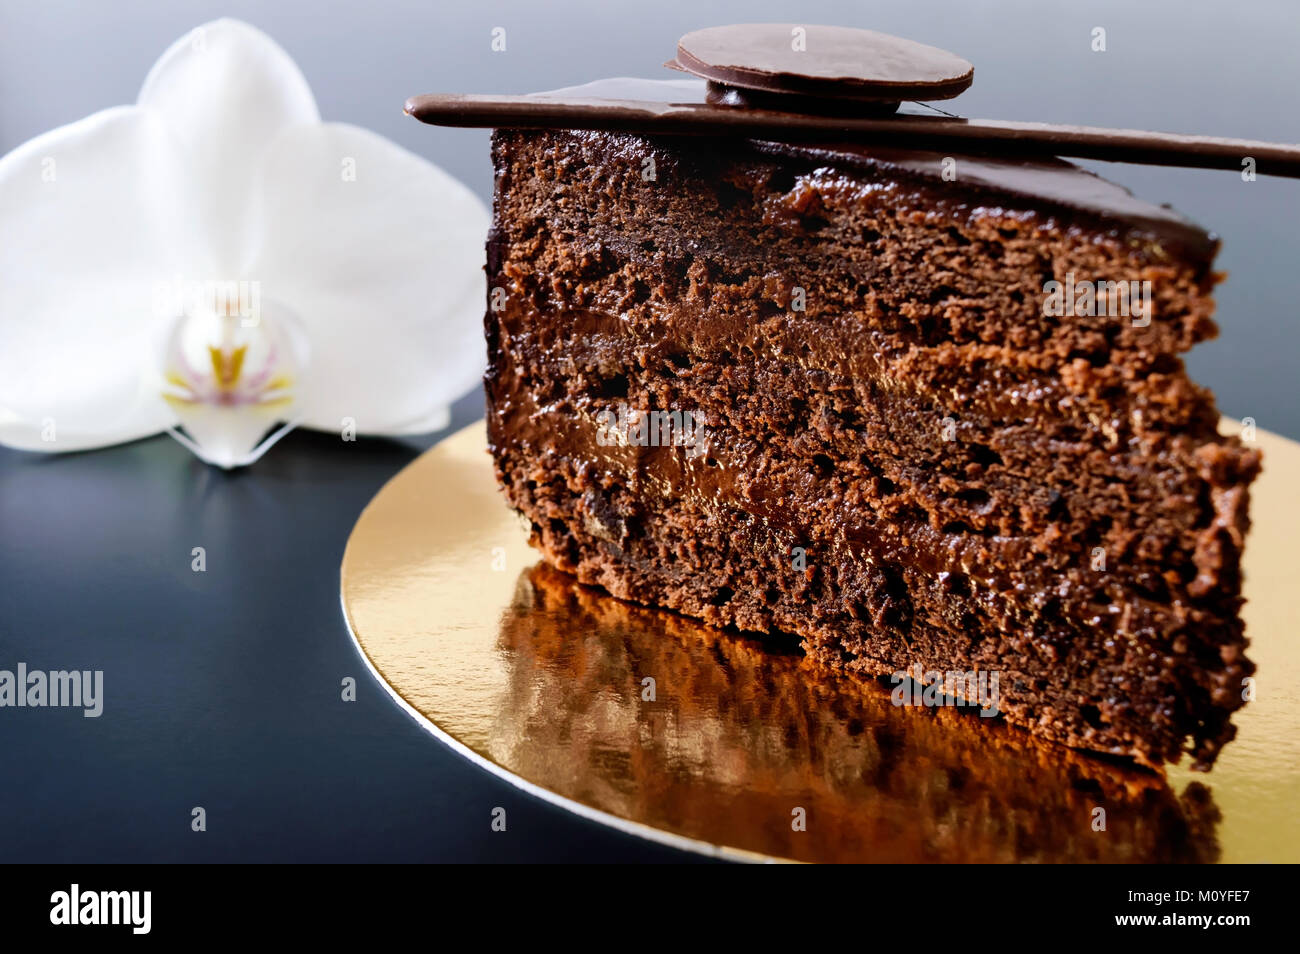 A piece of chocolate cake with chocolate cream on a golden napkin with a white orchid flower on a black background. - Stock Image